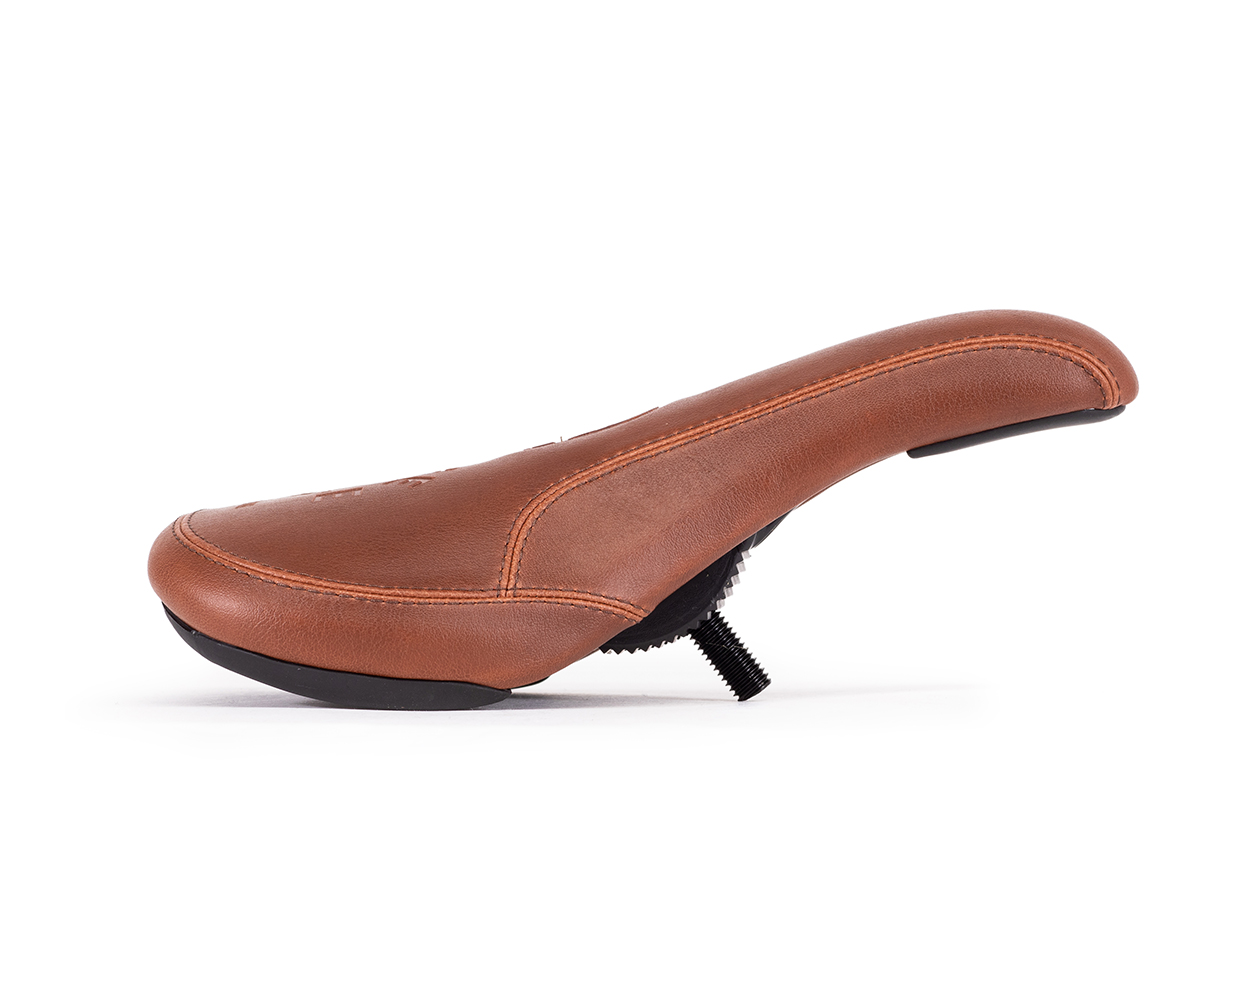 WTP_Team_pivotal_seat_slim_brown_side.jpg